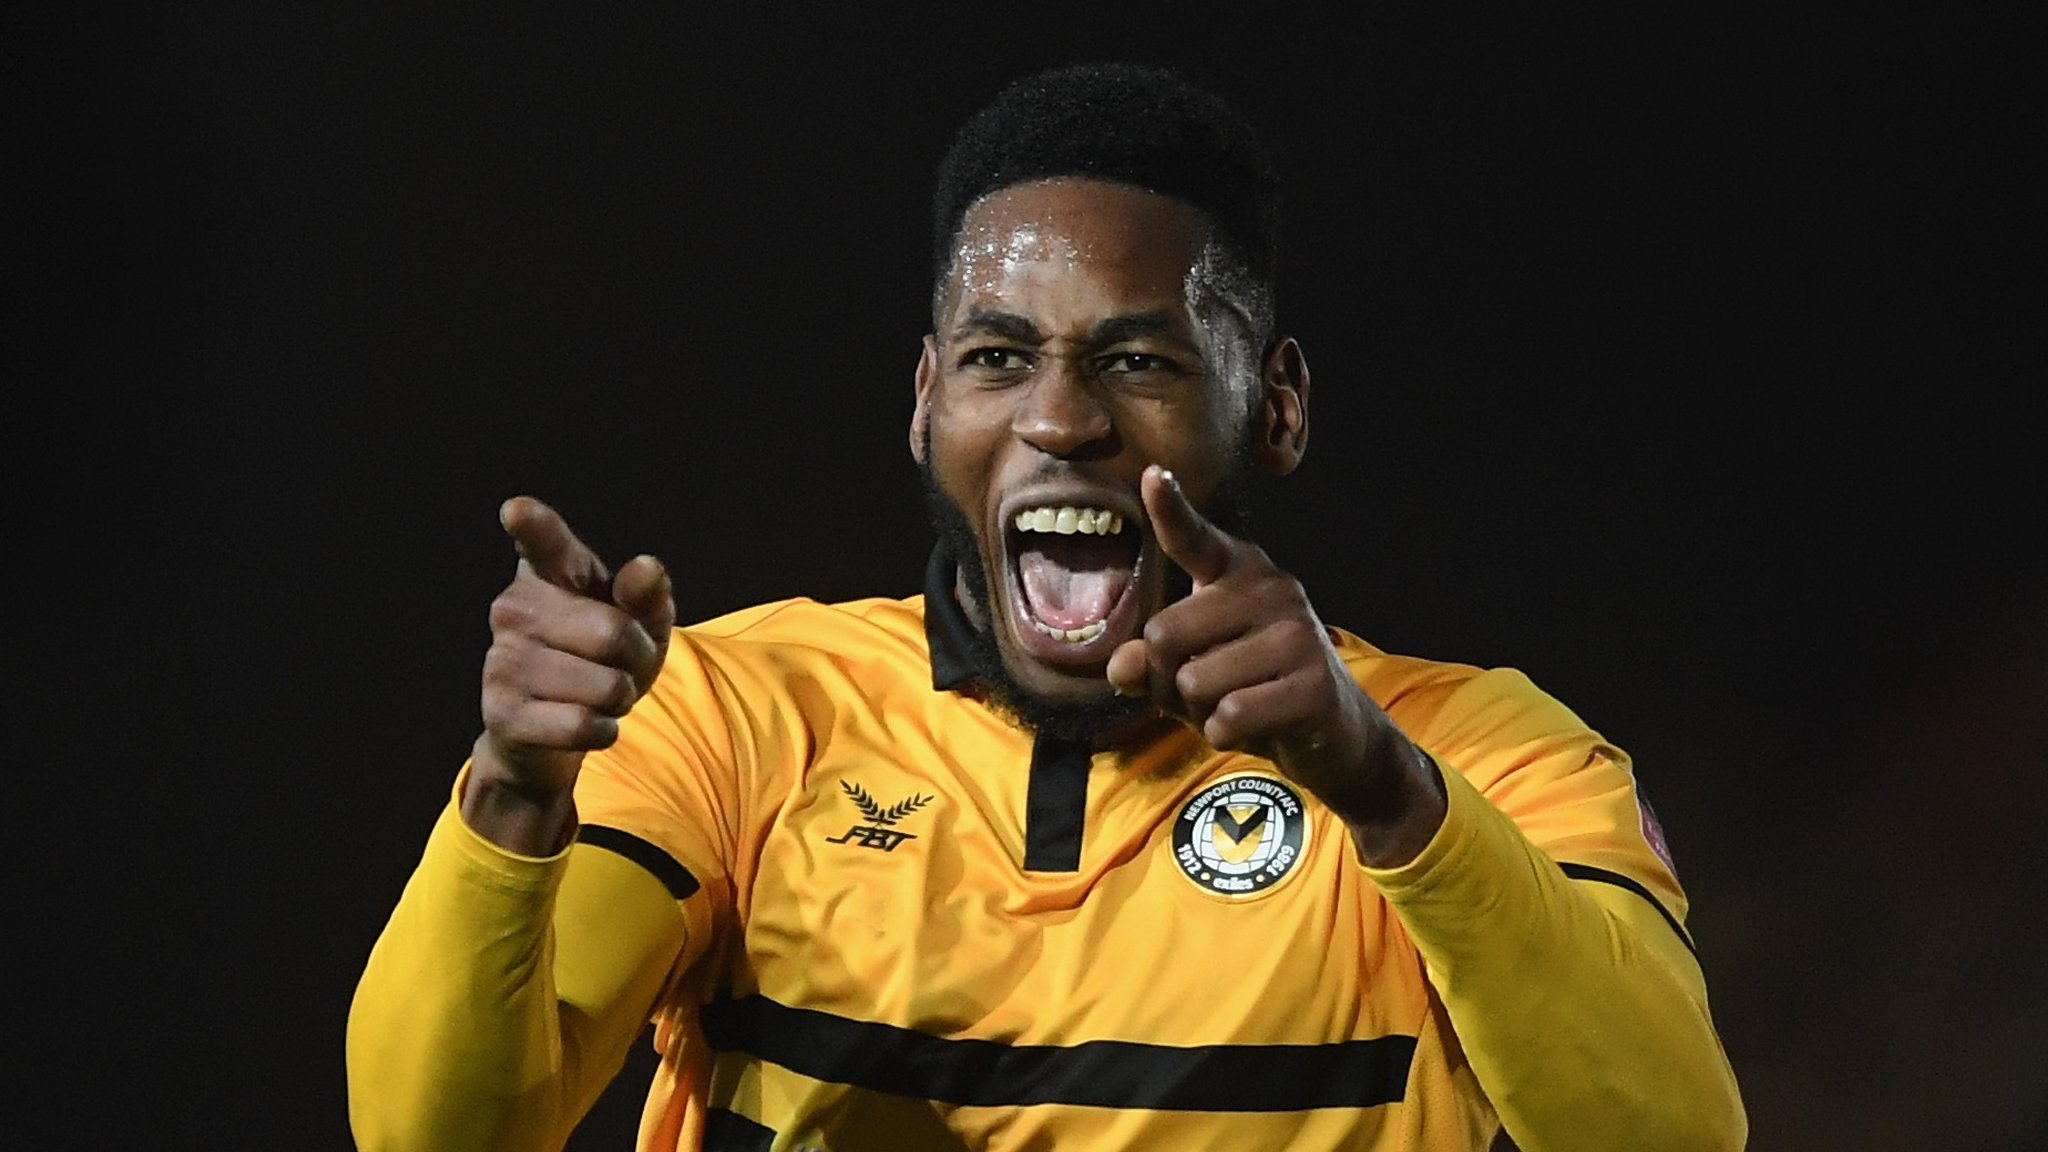 Newport 4-0 Wrexham: Home side set up Leicester tie after FA Cup replay victory